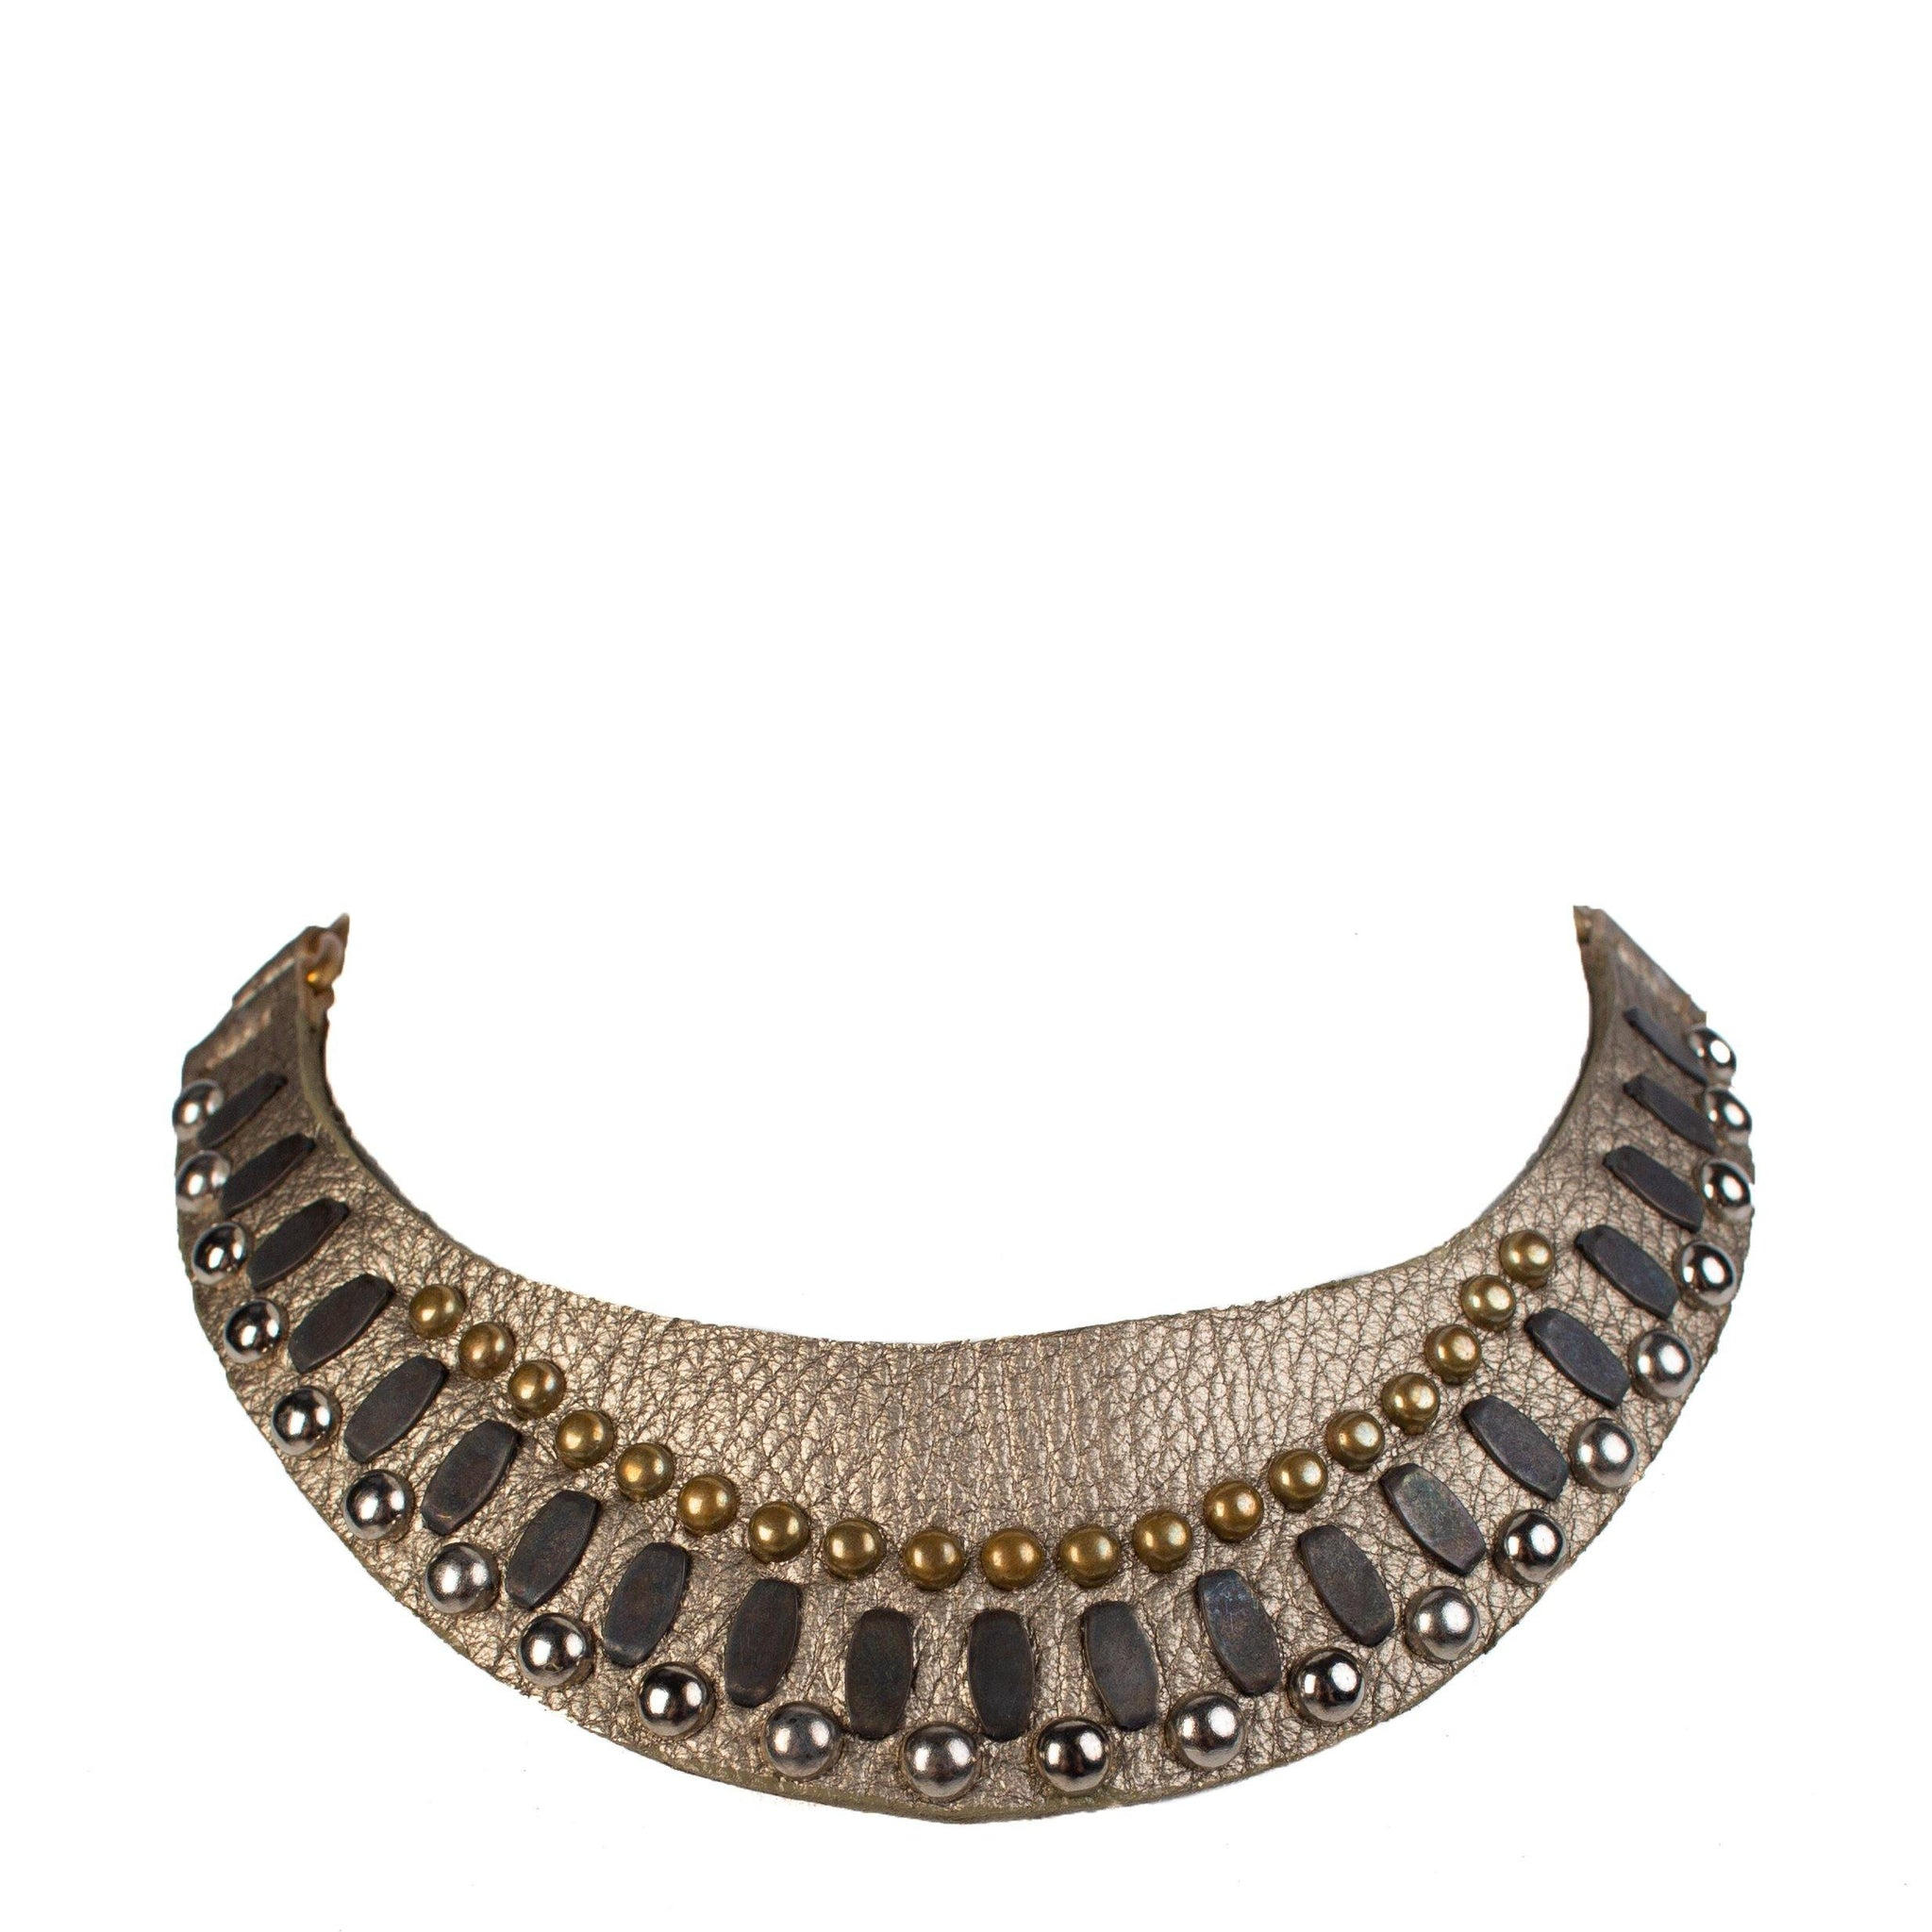 handmade grey metallic leather necklace for women with nickel, brass and black studs artwork - Calleen Cordero Designs